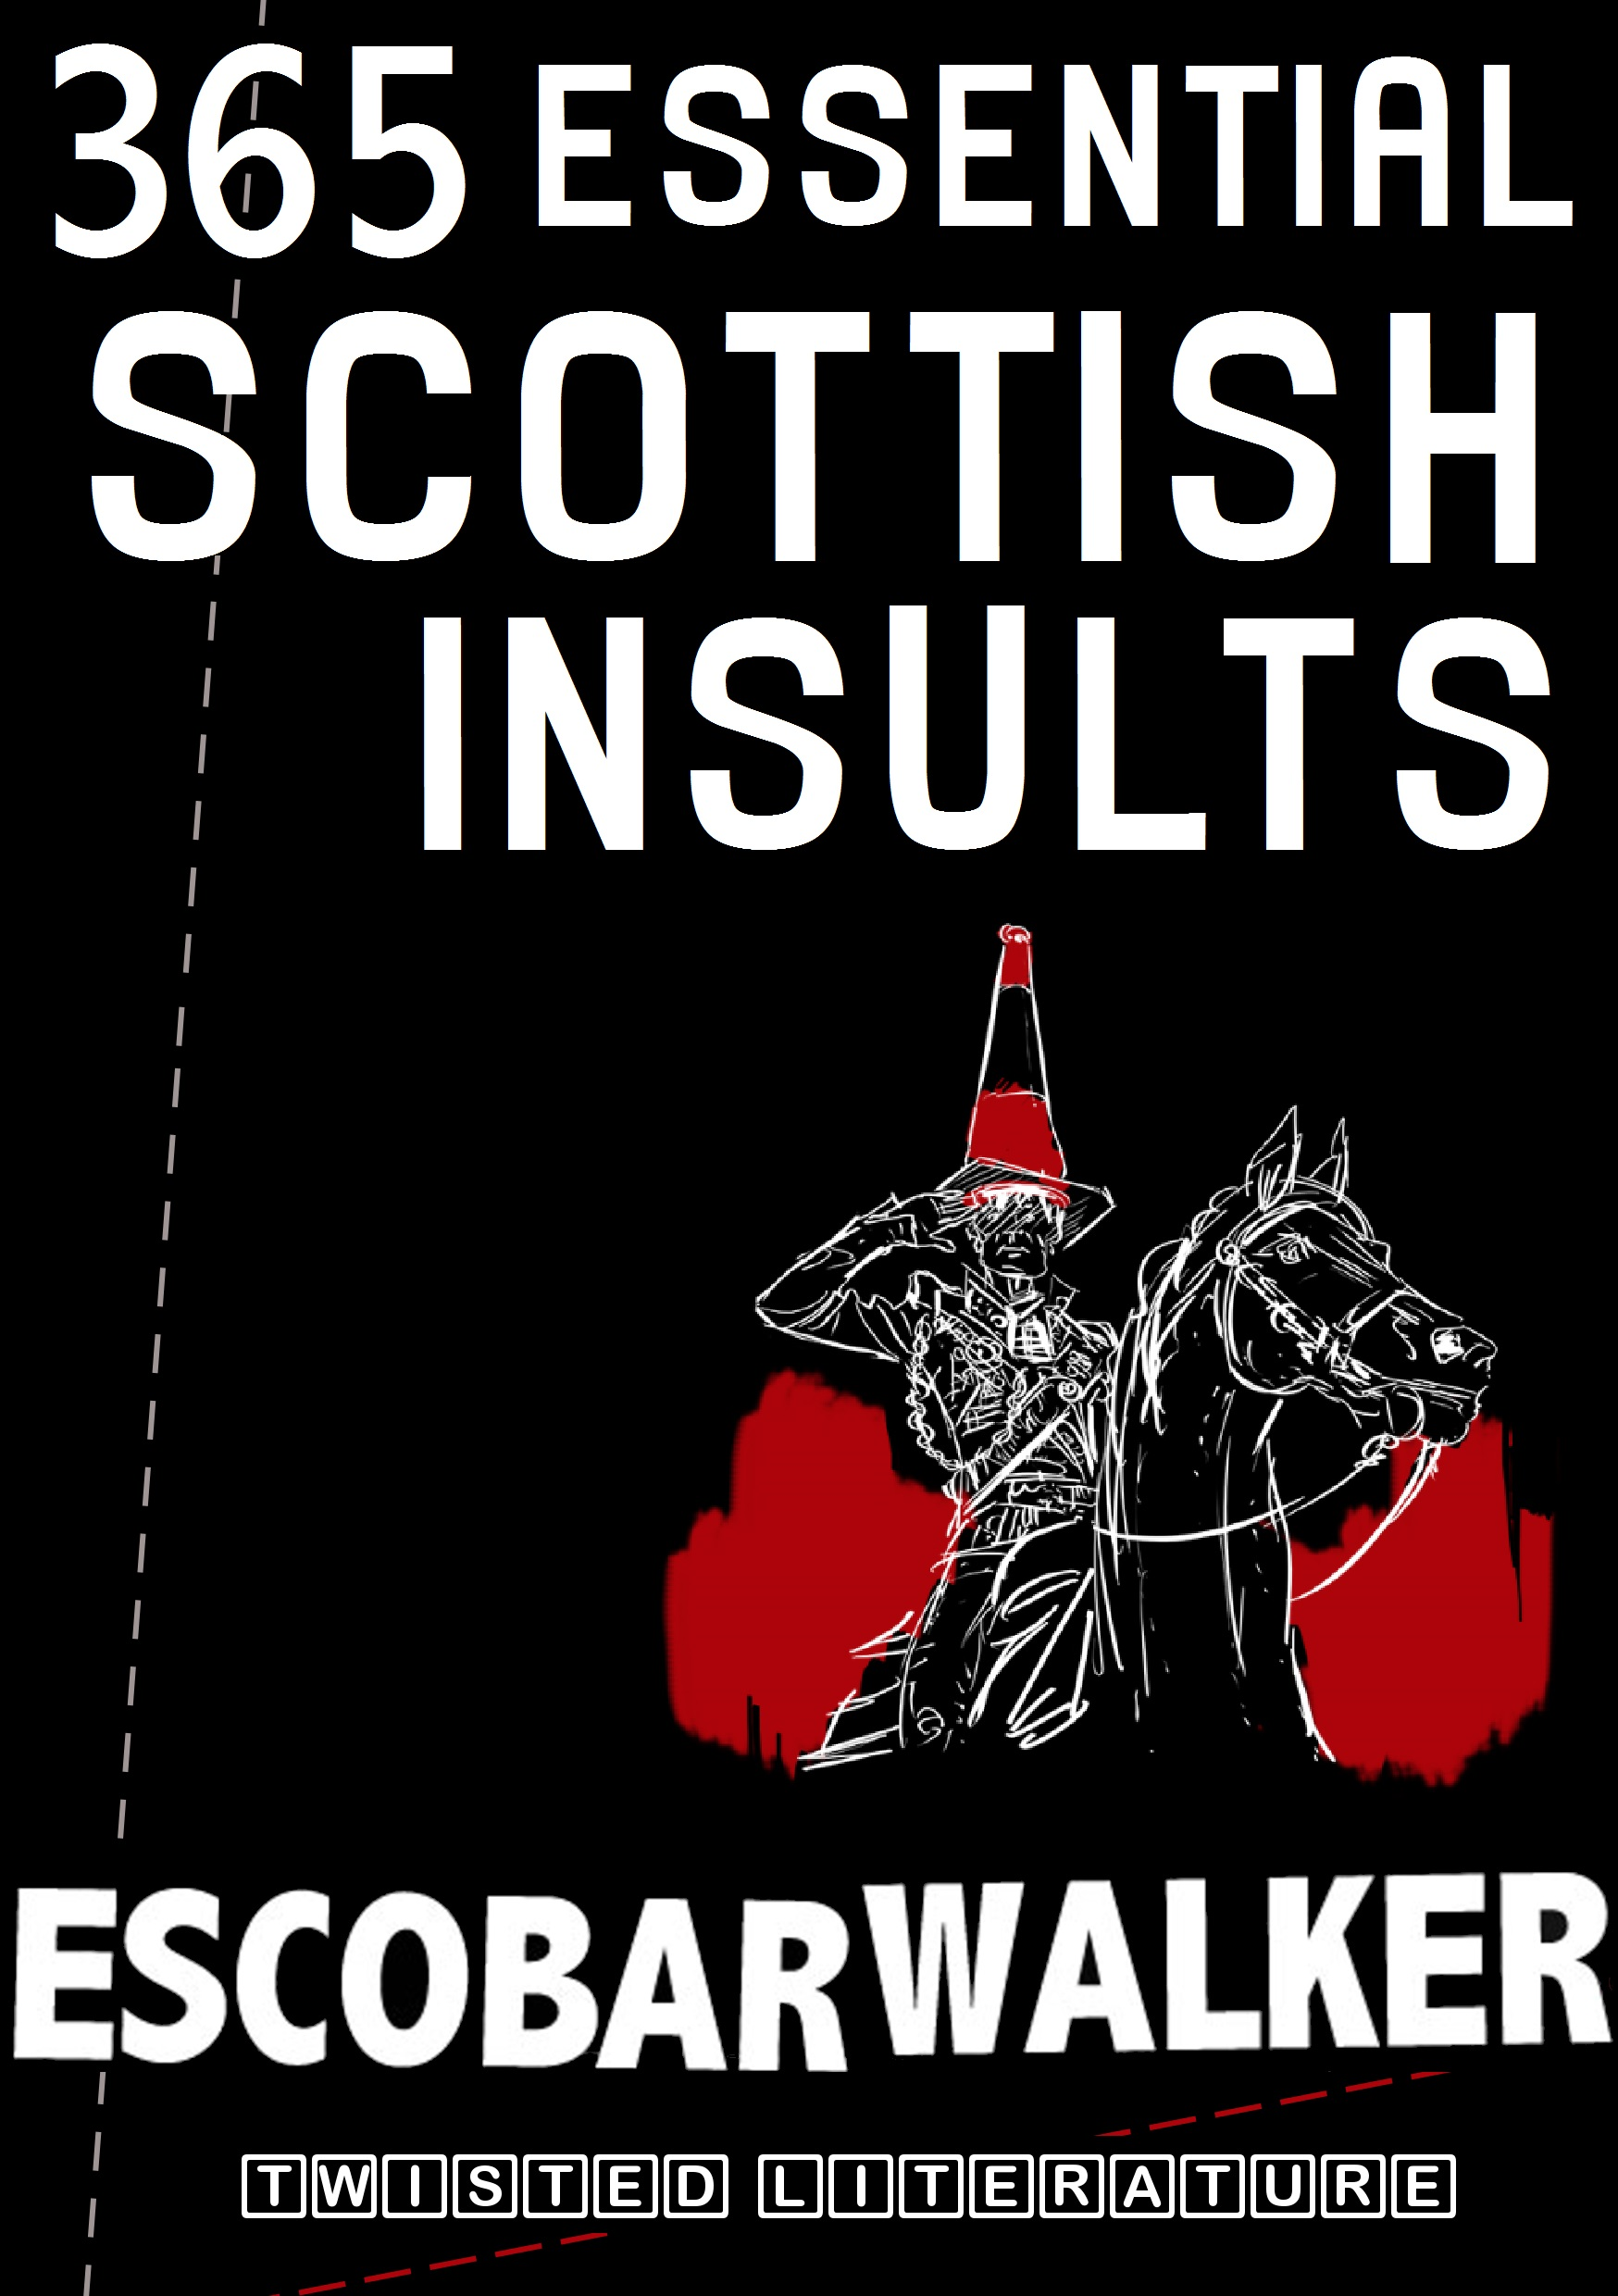 365 Essential Scottish Insults